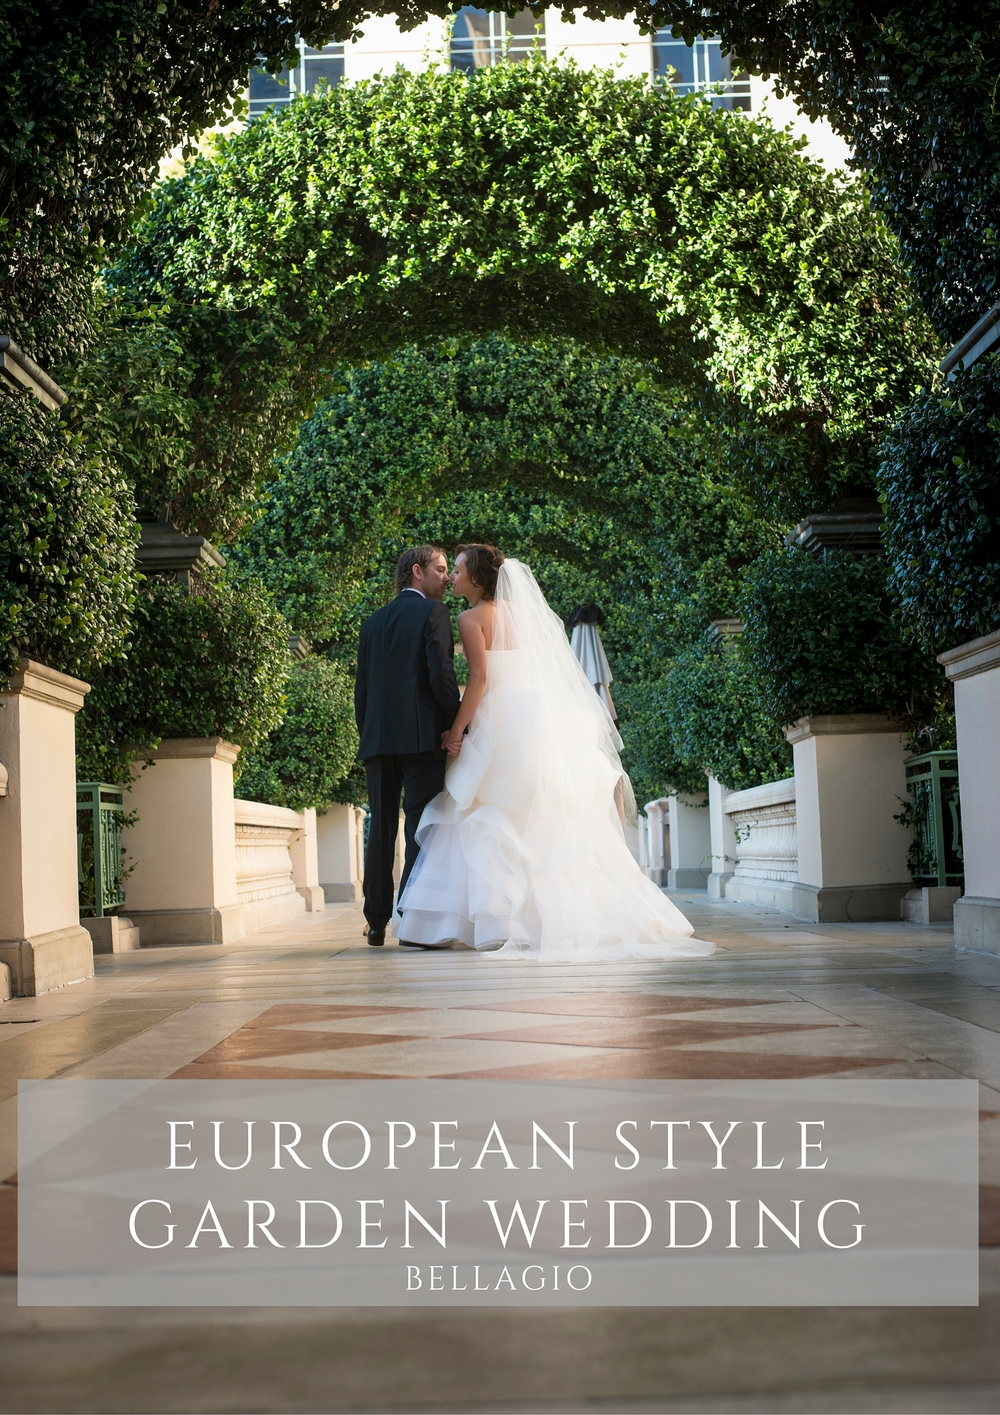 Featured on Brides.com & Carats and Cake:   The bride is a thoroughly modern woman from Australia with a sharp wit and bold fashion sense.  The groom carries himself with the chivalry of another time, and traveled across the world from Ireland for the woman he loves.  Together, they wanted a wedding that showcased their love of Europe in a setting that was both iconic and playful.  I love everything about this flawless affair!   Wedding at  The Bellagio  |  Las Vegas Wedding Planner  Andrea Eppolito   |  Floral and Decor by  Naakiti Floral   |  Photography by  Alt F   |  Video by  S  omething New Cinema   |  Wedding Dress by  Vera Wang   |    Rentals and Decor by  Sit on This Inc.